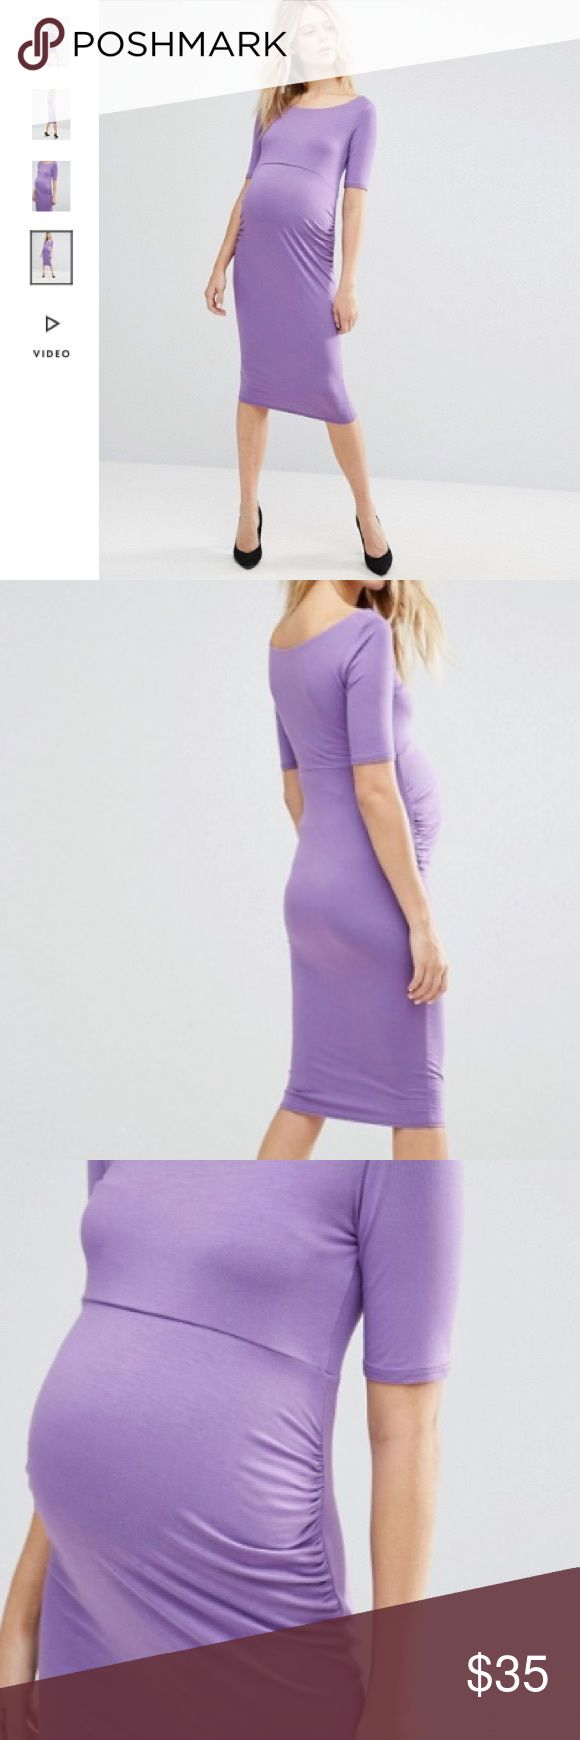 1721 best my posh picks images on pinterest asos maternity nwt asos maternity lilac color dress size 4 boutique ombrellifo Image collections